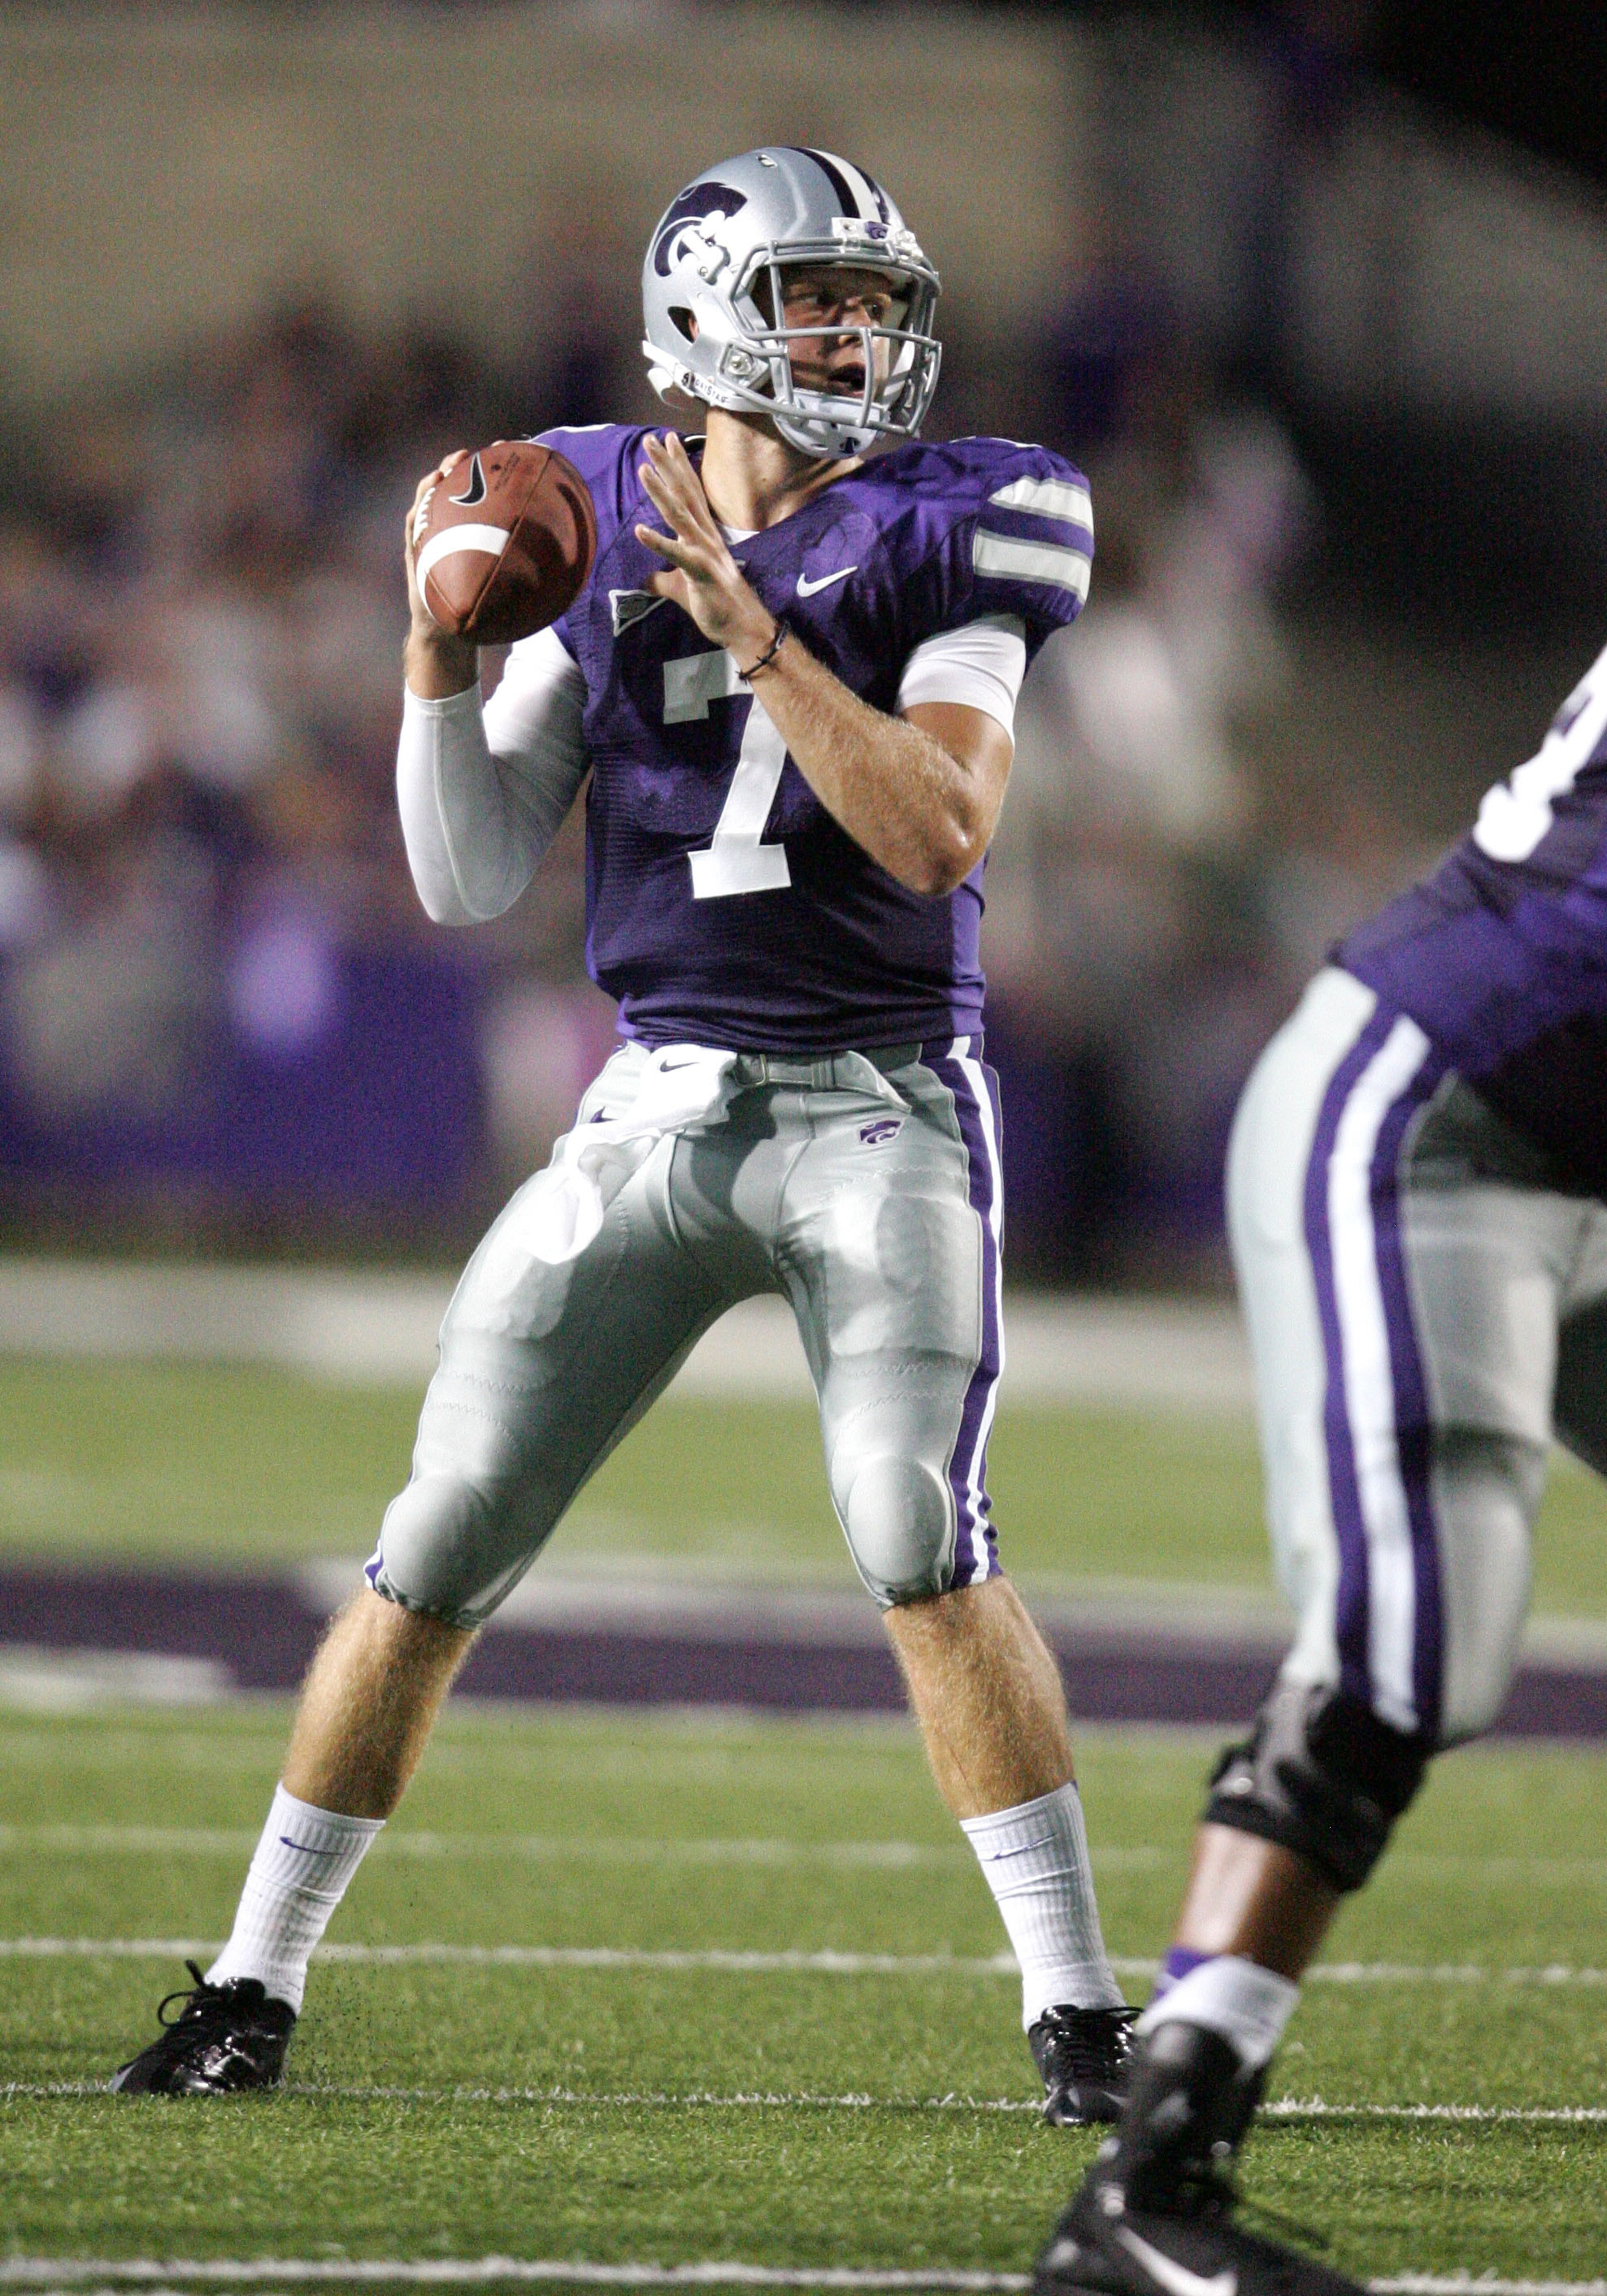 I don't believe in reincarnation, but from what little I've seen of Taylor Laird's film, he's almost like a second coming of Collin Klein.